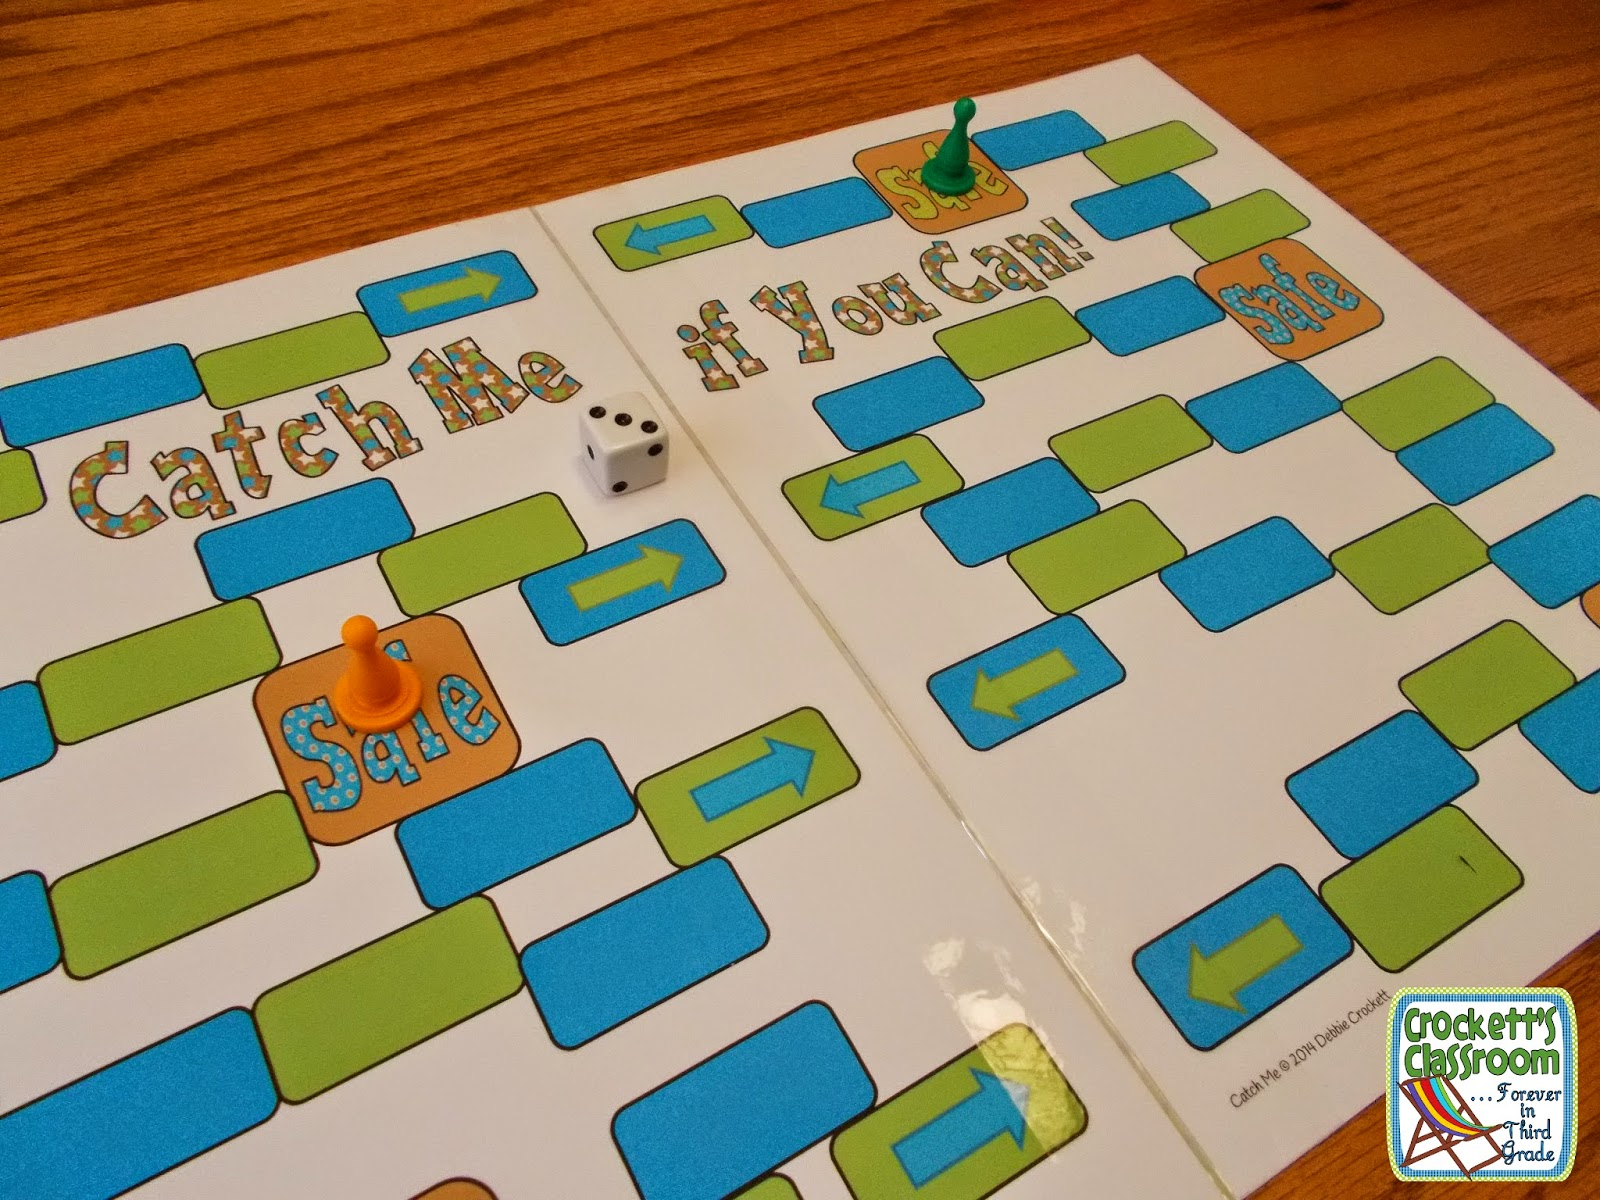 This super simple game can be used to review math facts, spelling words, or any other academic skill.  It's also a fun way to spice up your task cards.